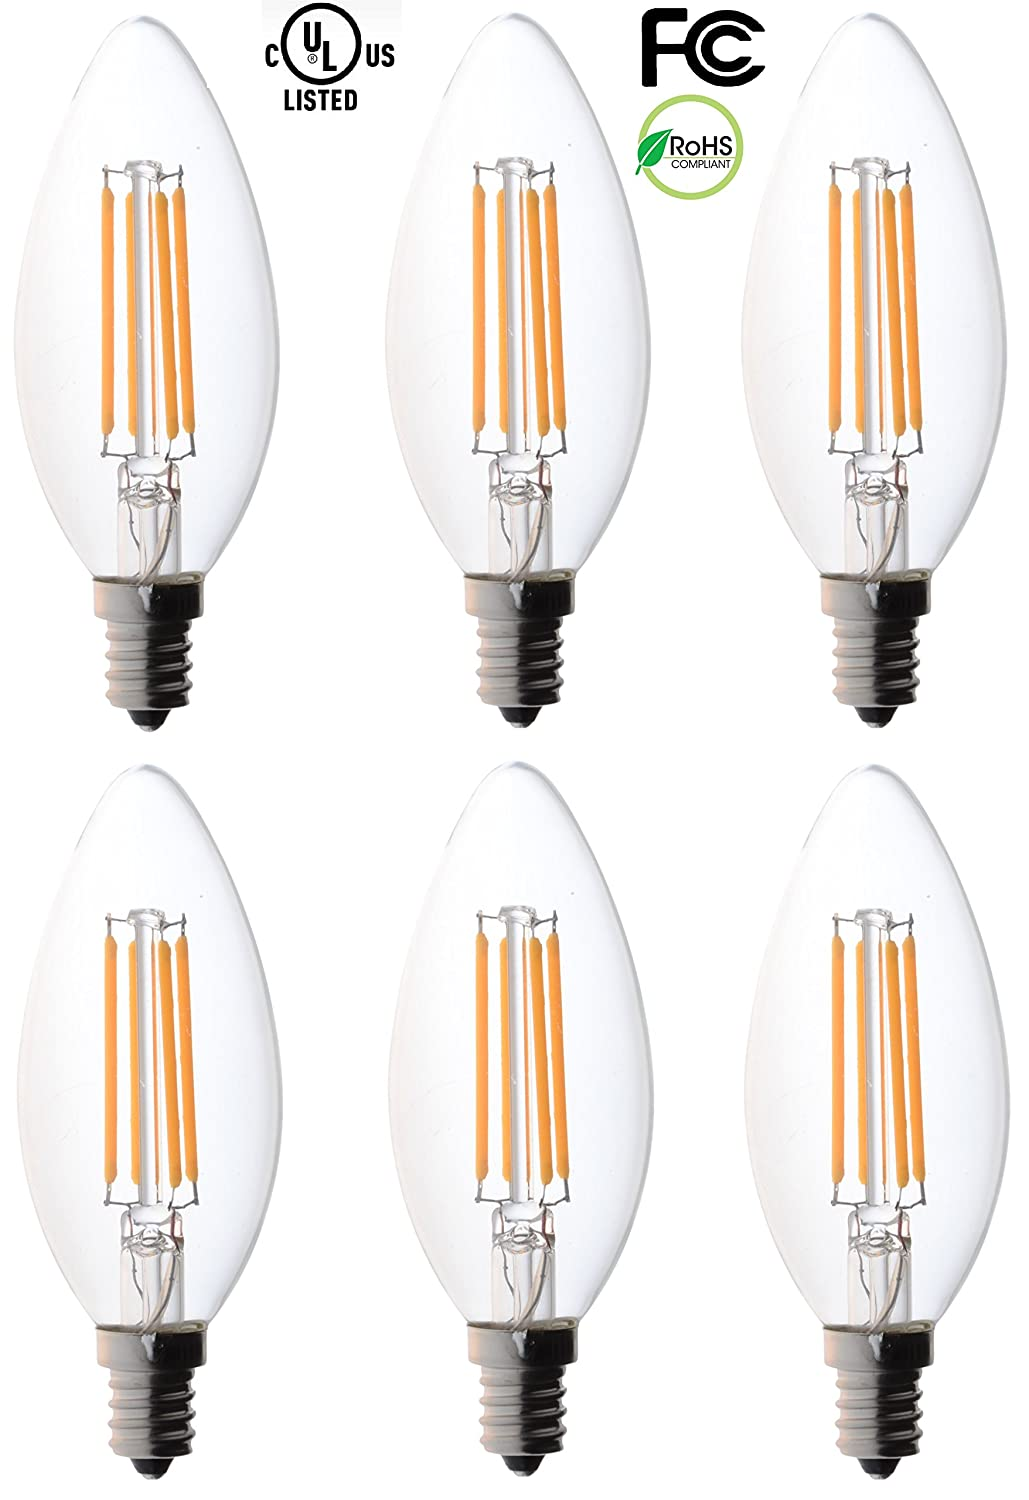 6 pack bioluz led filament candelabra clear led bulbs e12 base 6 pack bioluz led filament candelabra clear led bulbs e12 base c37 high efficiency 360 led candle bulbs pack of 6 amazon arubaitofo Gallery